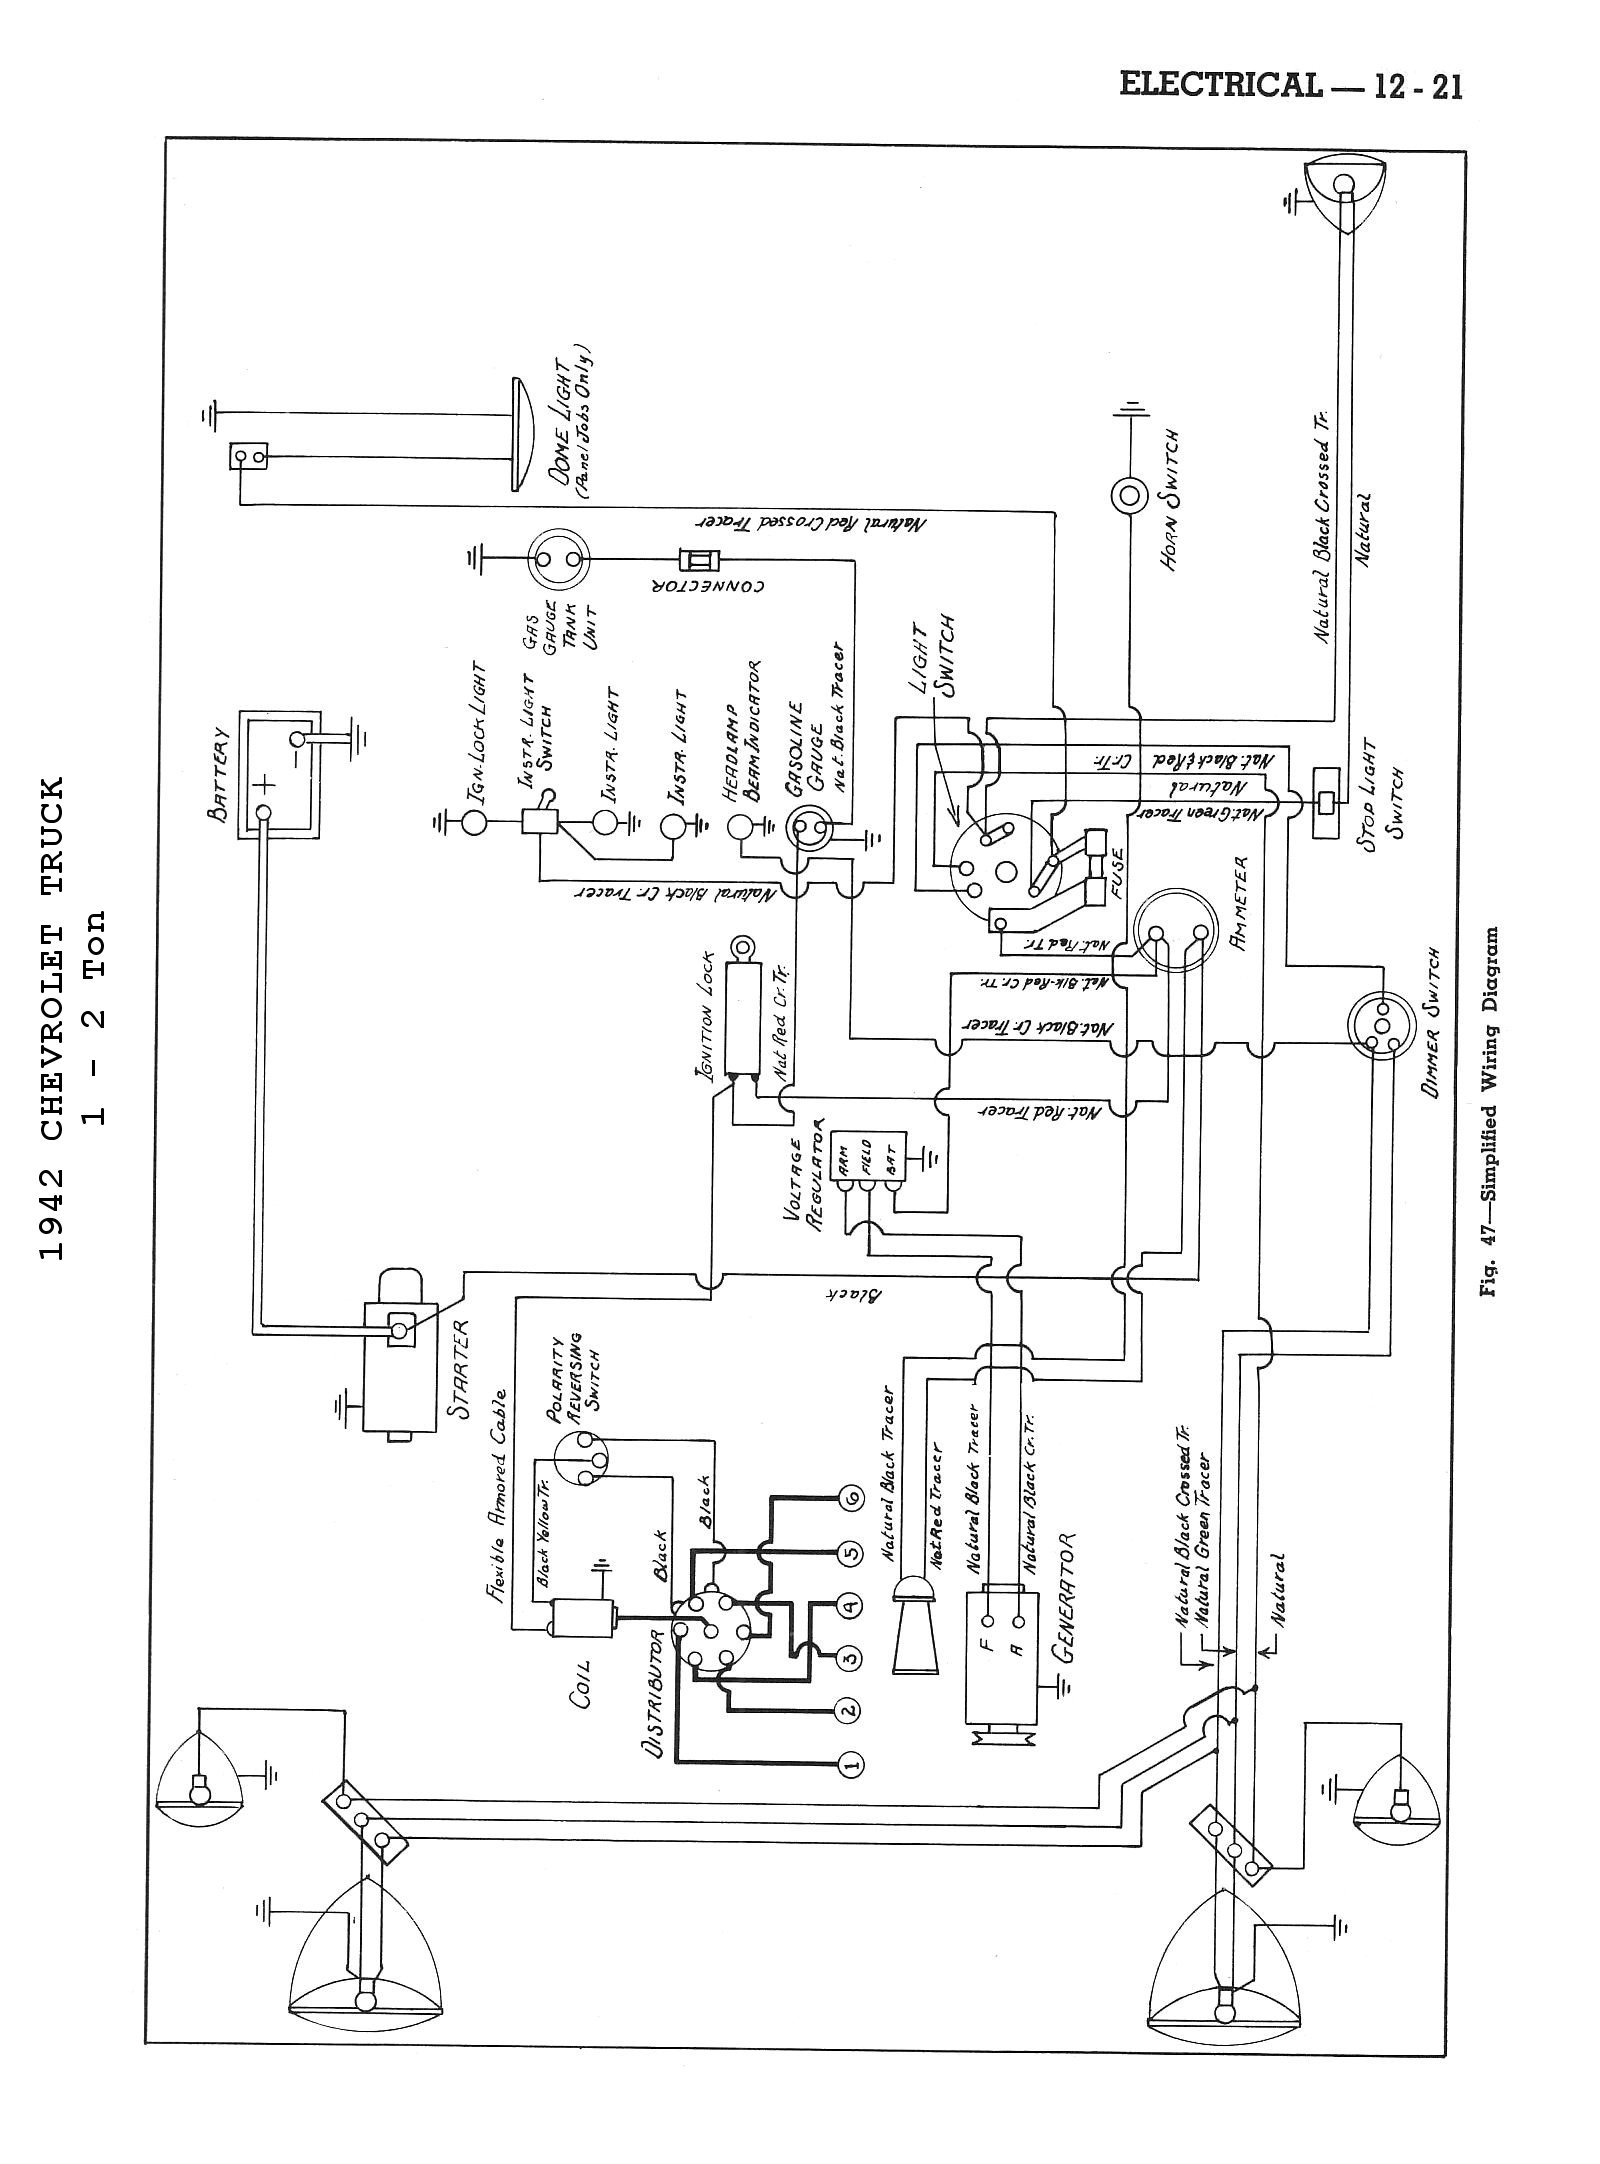 hight resolution of 1958 chevrolet steering column wiring diagram